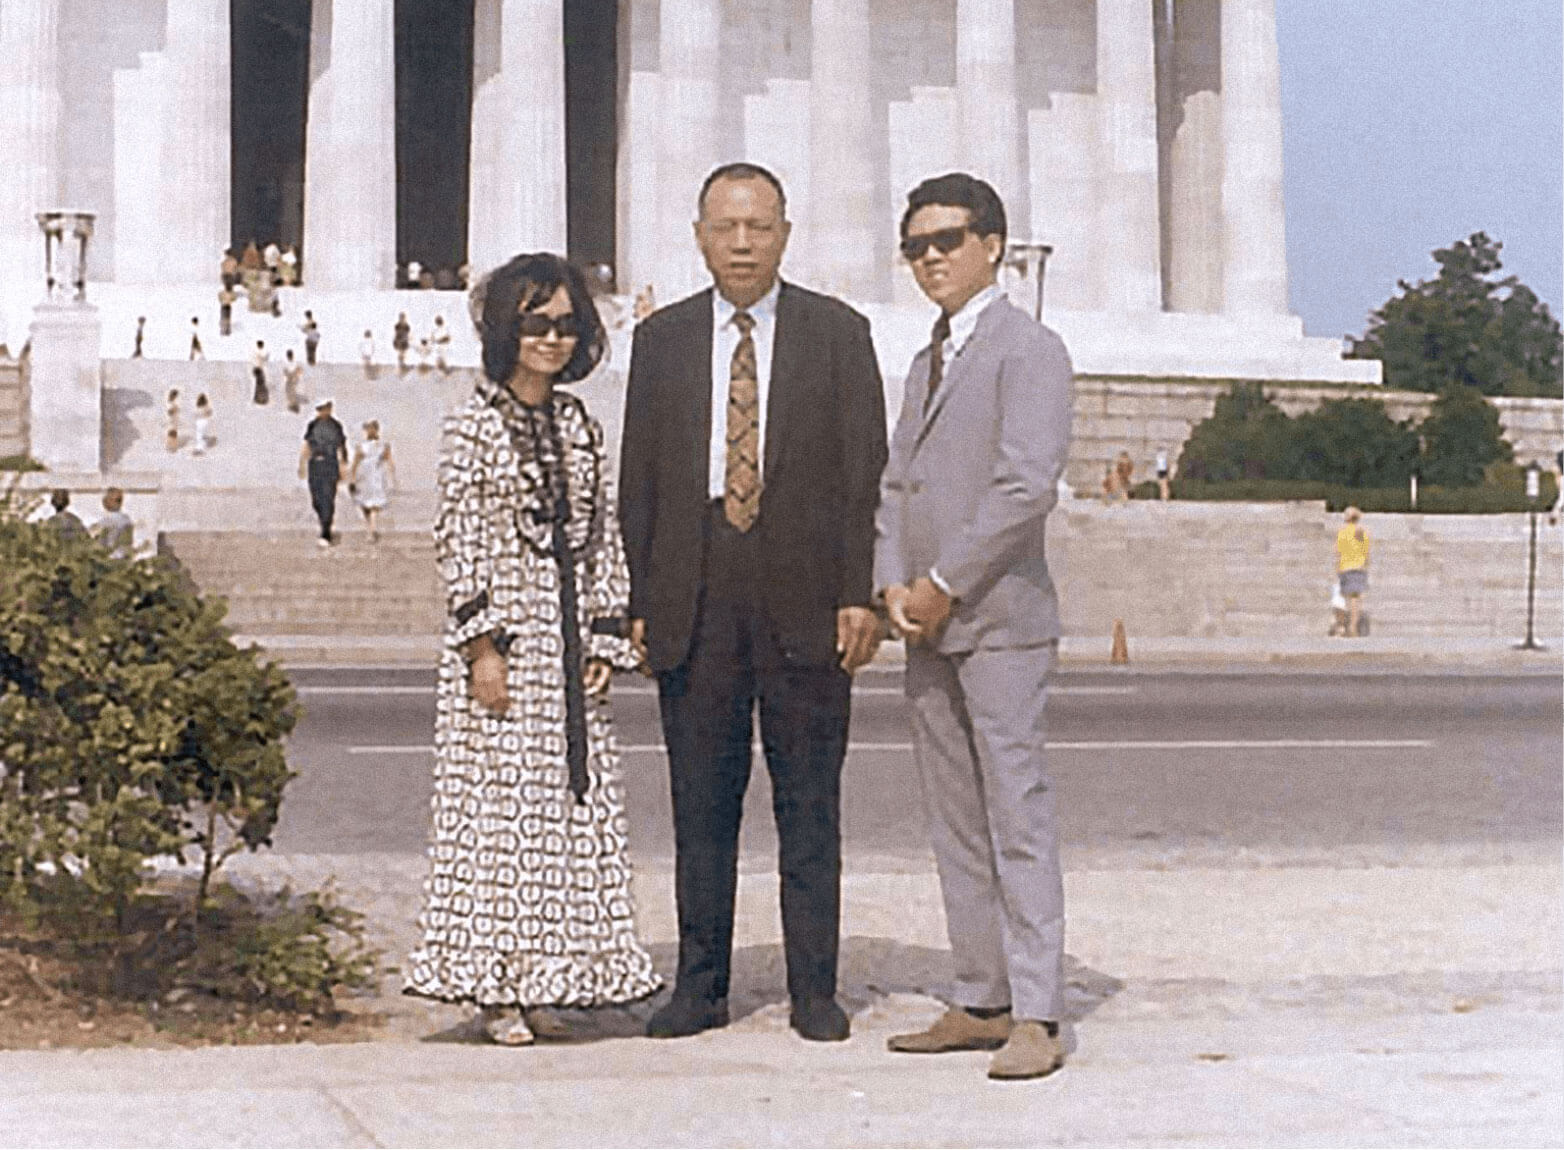 Peggy Cherng, Chef Ming Tsai Cherng 'YeYe,' and Andrew Cherng visiting the Lincoln Memorial